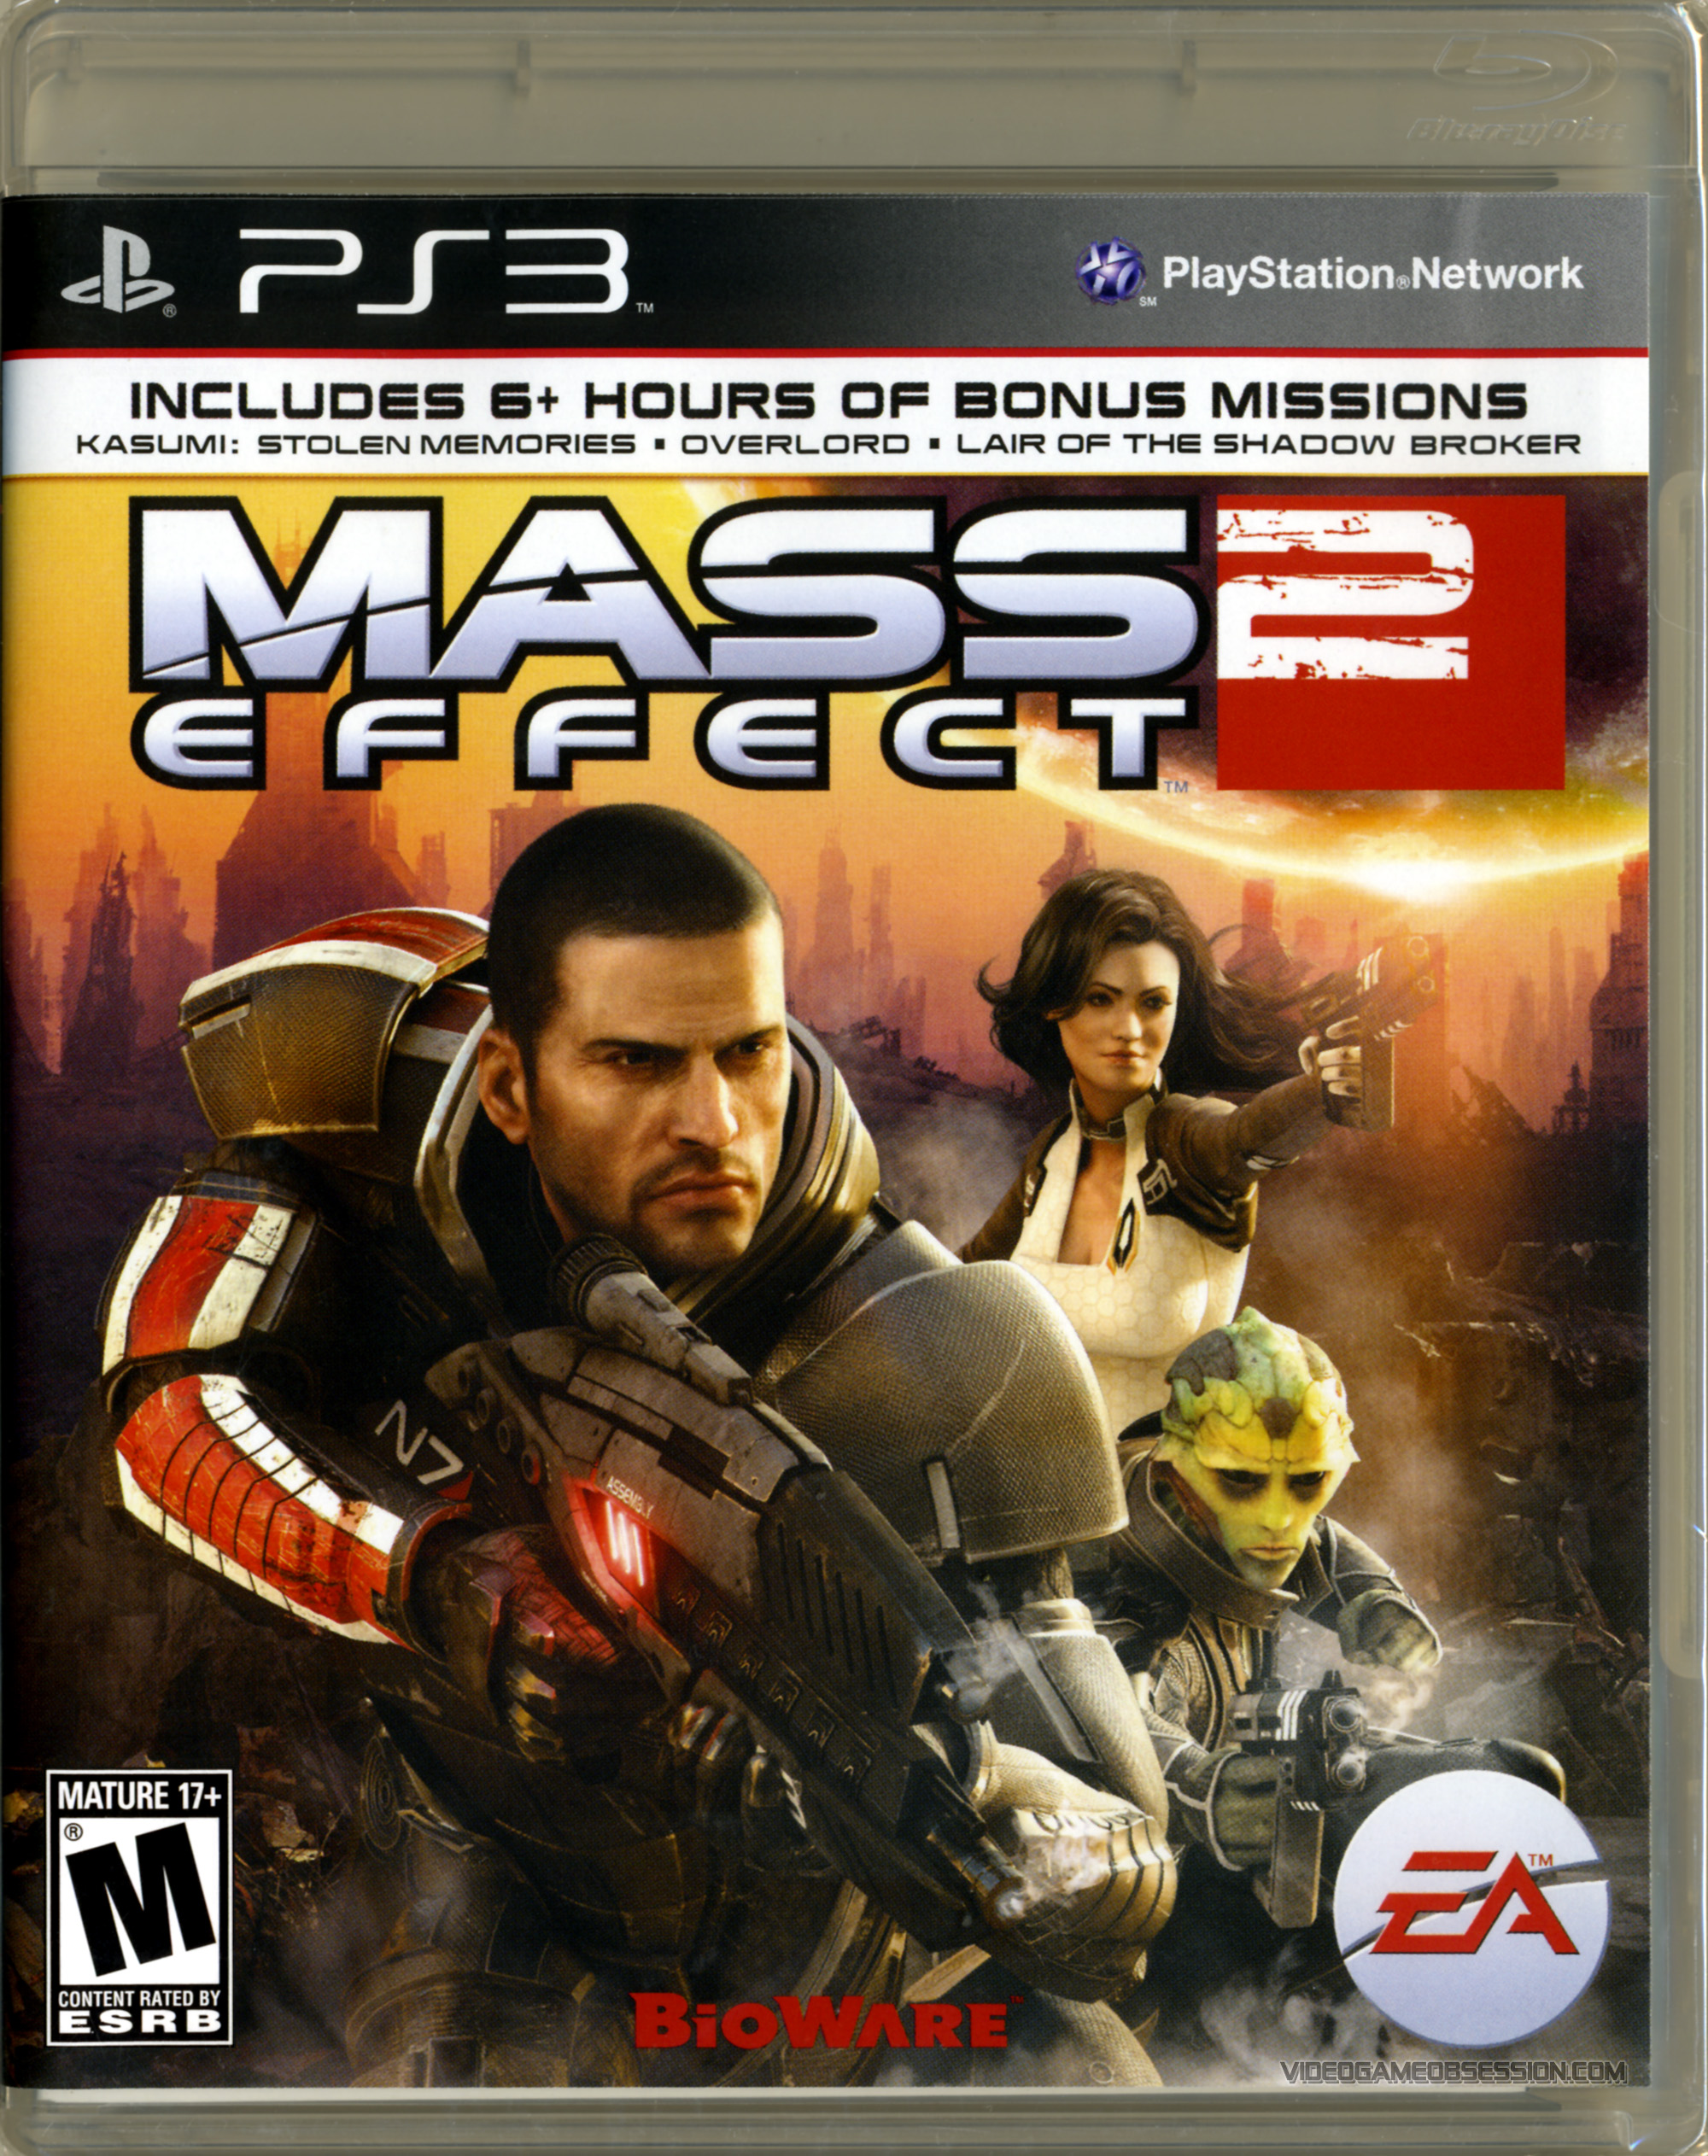 Download Tracking Stolen Ps3 Games free software